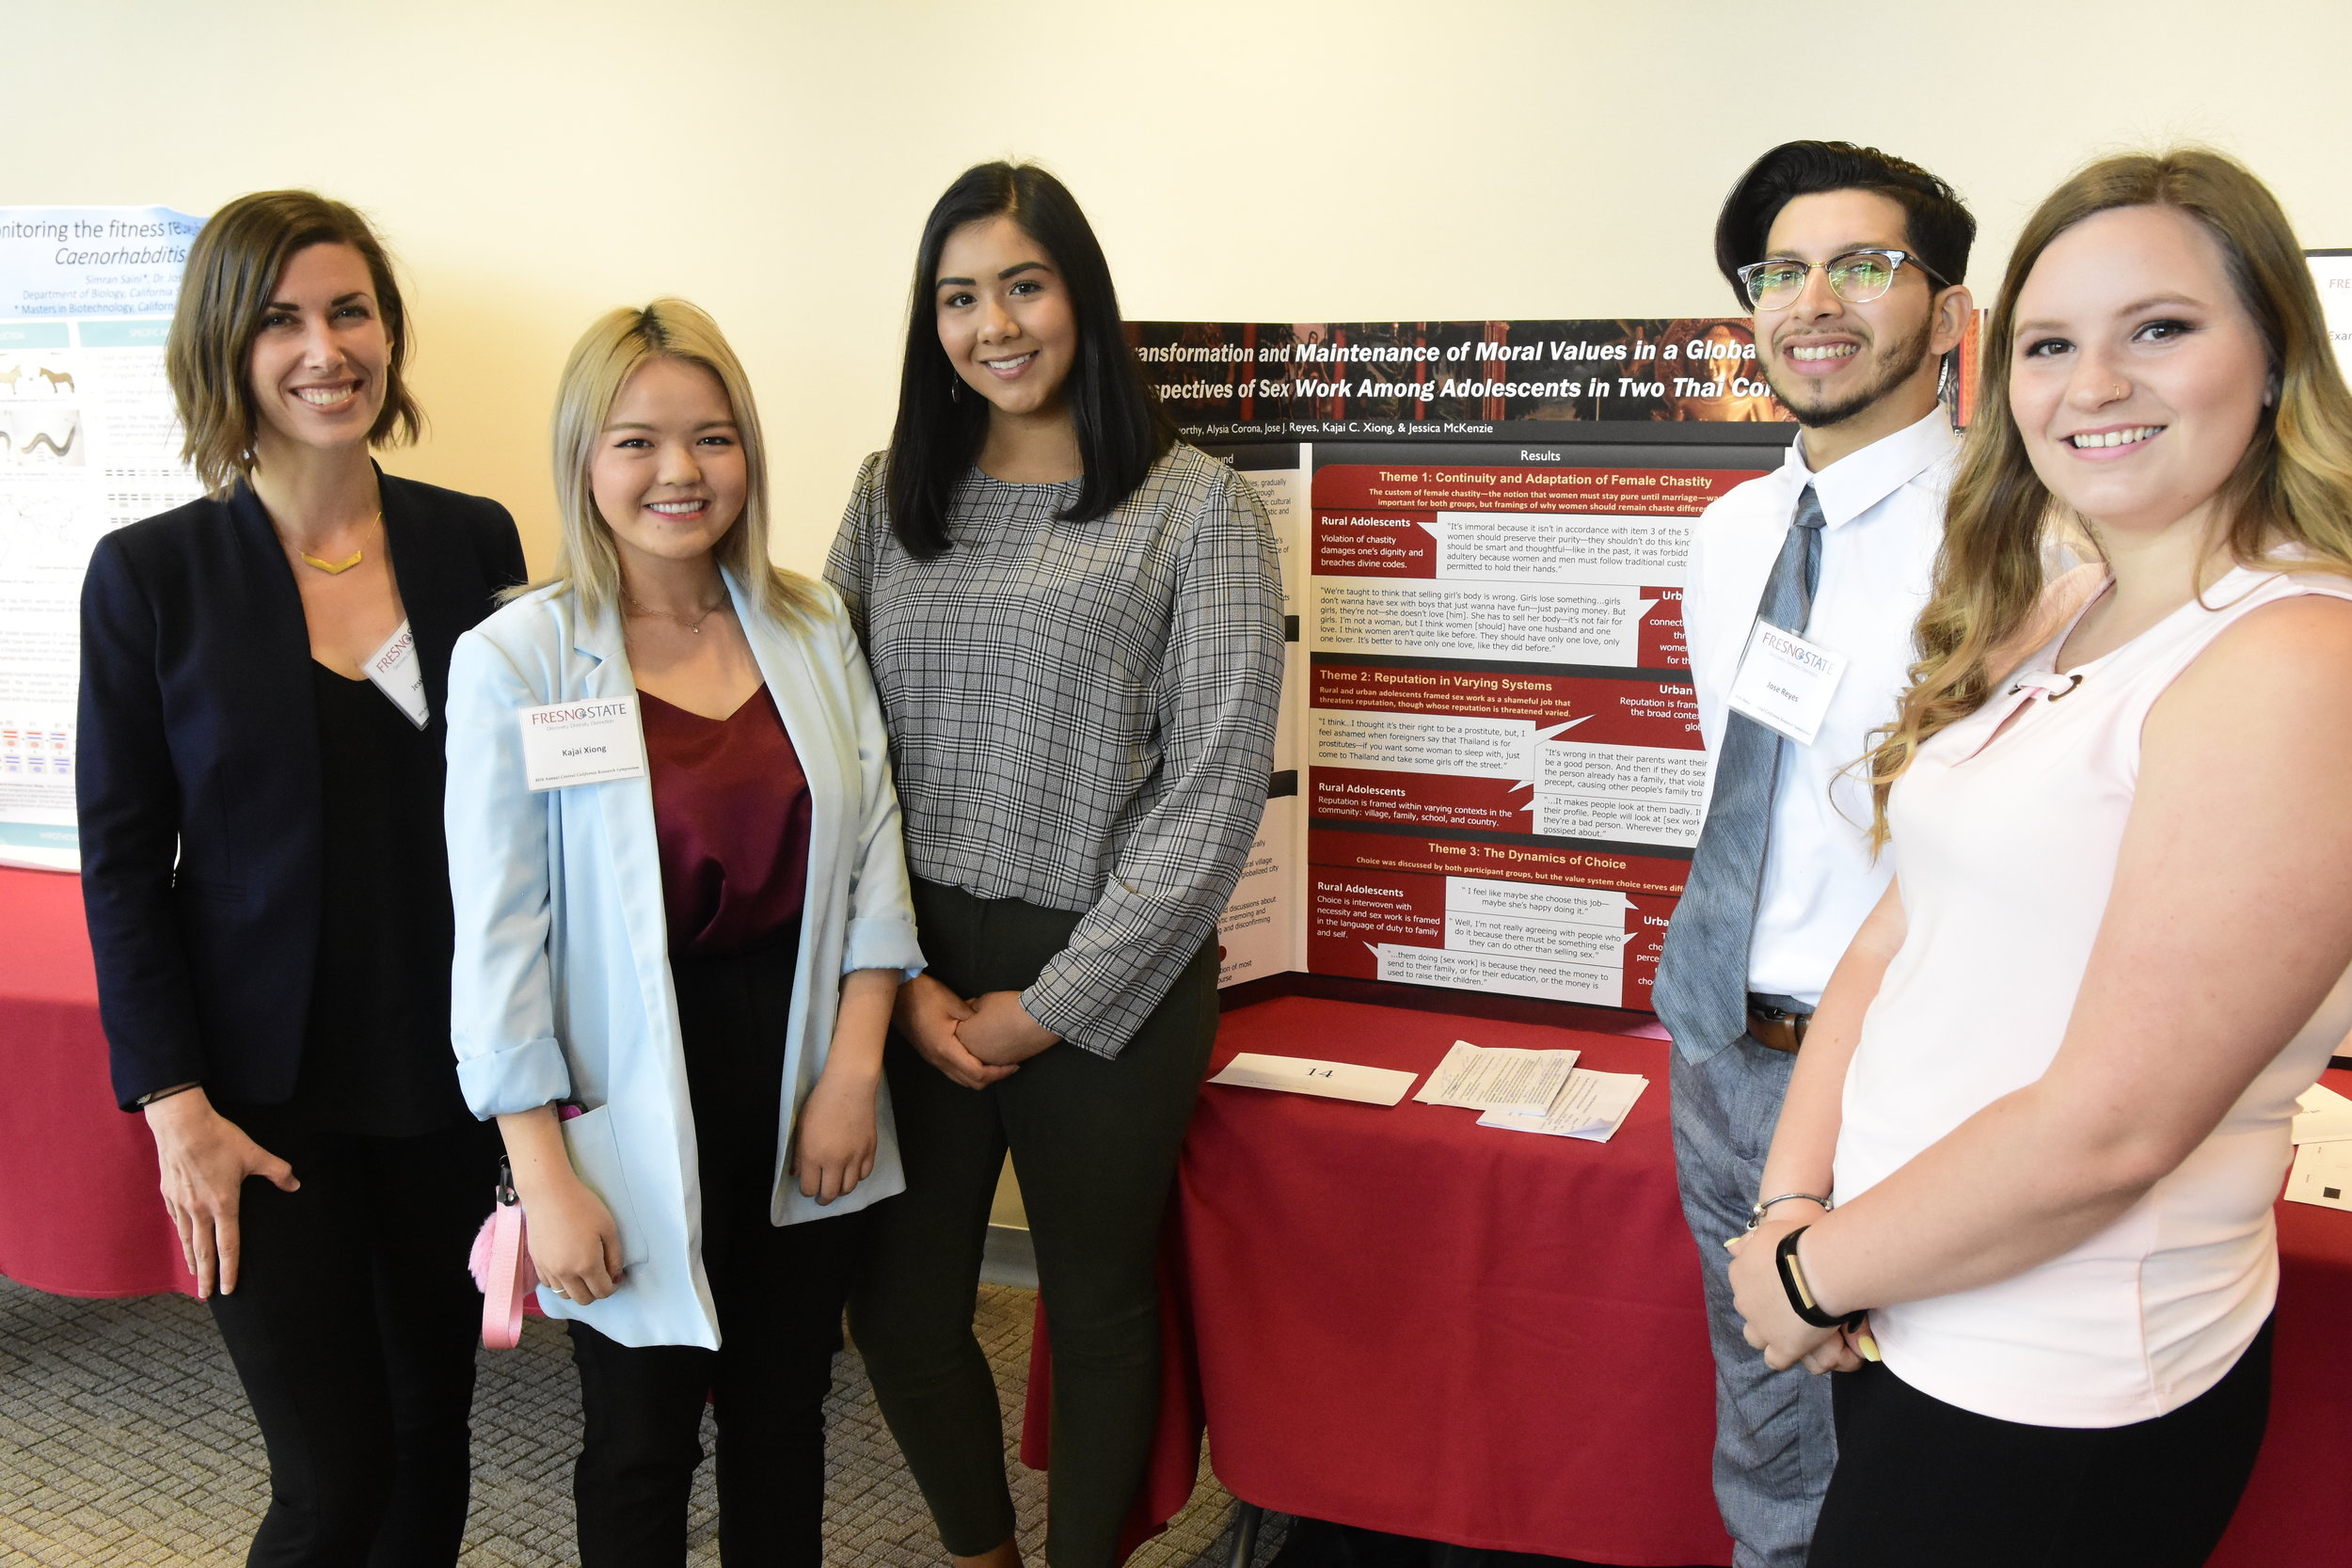 HD&C Lab members present their poster, Transformation and Maintenance of Moral Values in a Globalized World: Perspectives of Sex Work Among Adolescents in Two Thai Communities.  L-R: Dr. McKenzie, Kajai, Alysia, Jose, and Chelsee